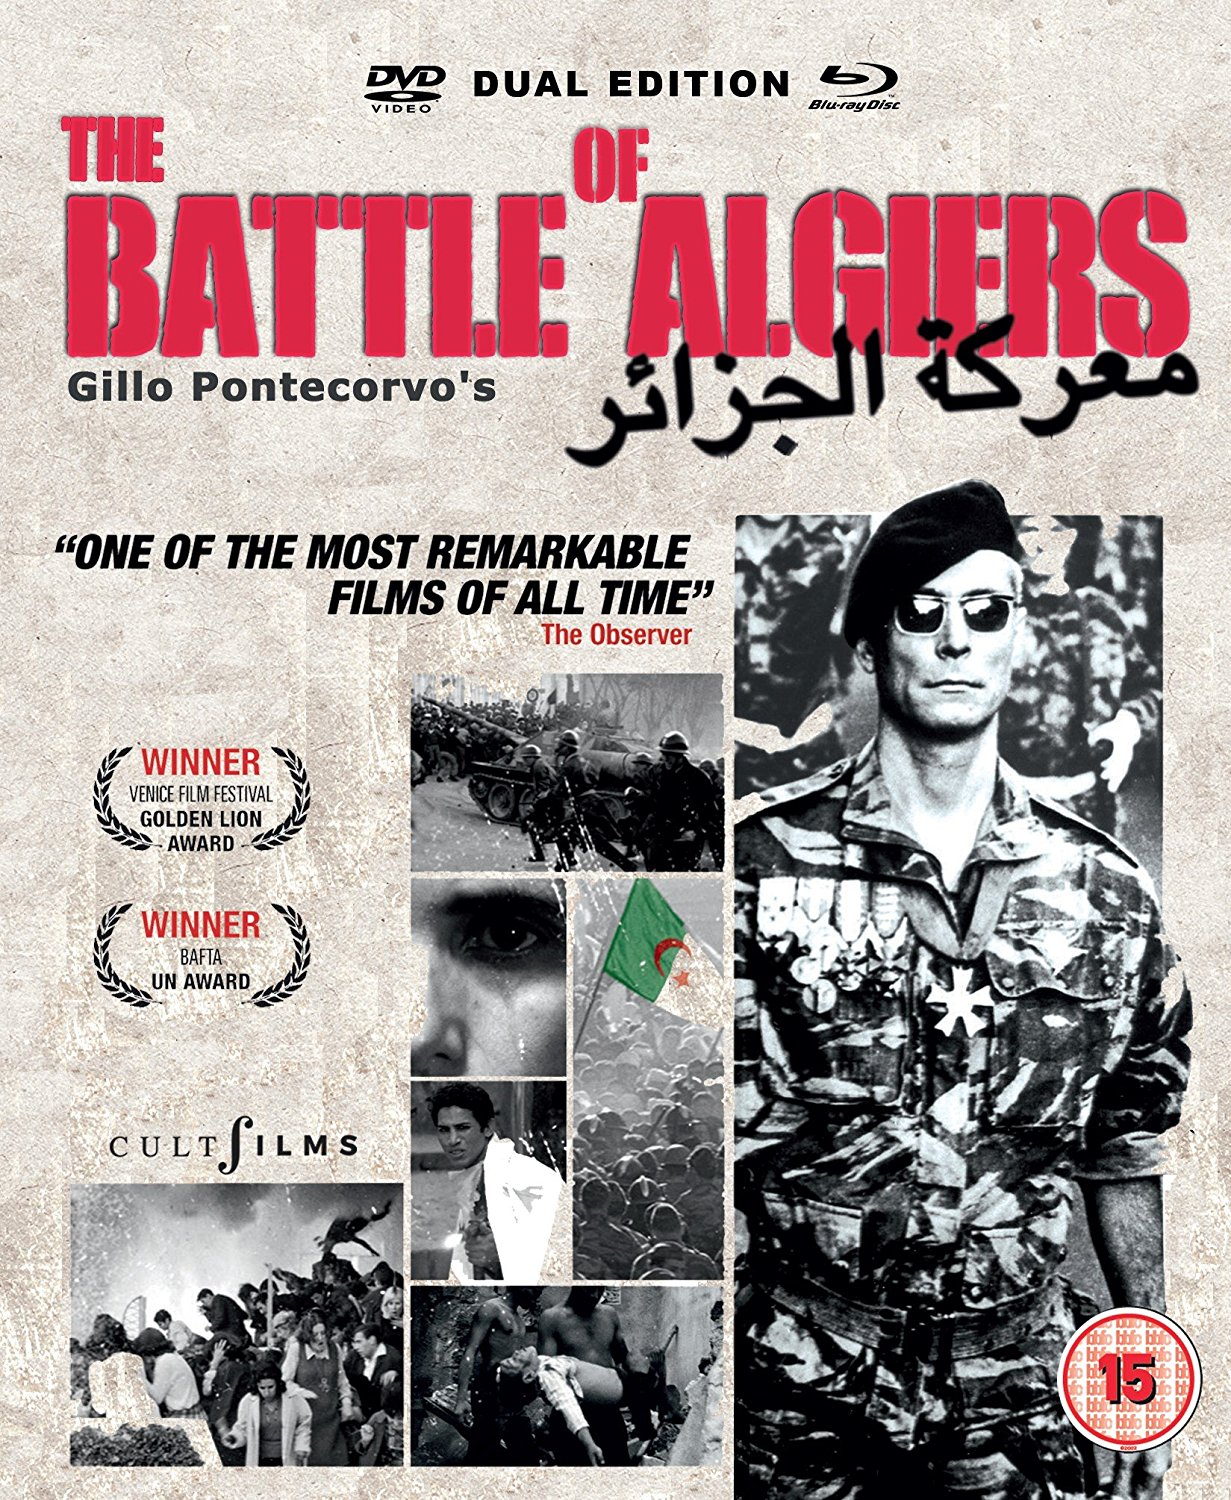 Buy The Battle of Algiers Dual Edition